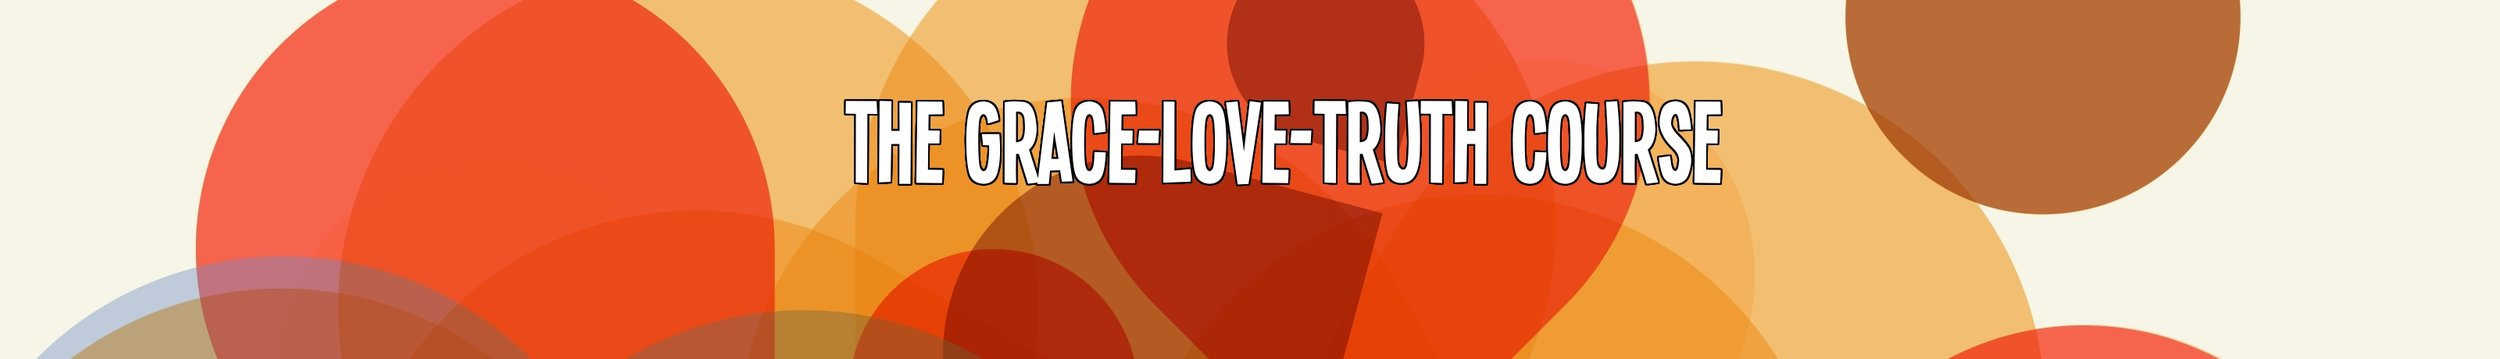 grace love truth course